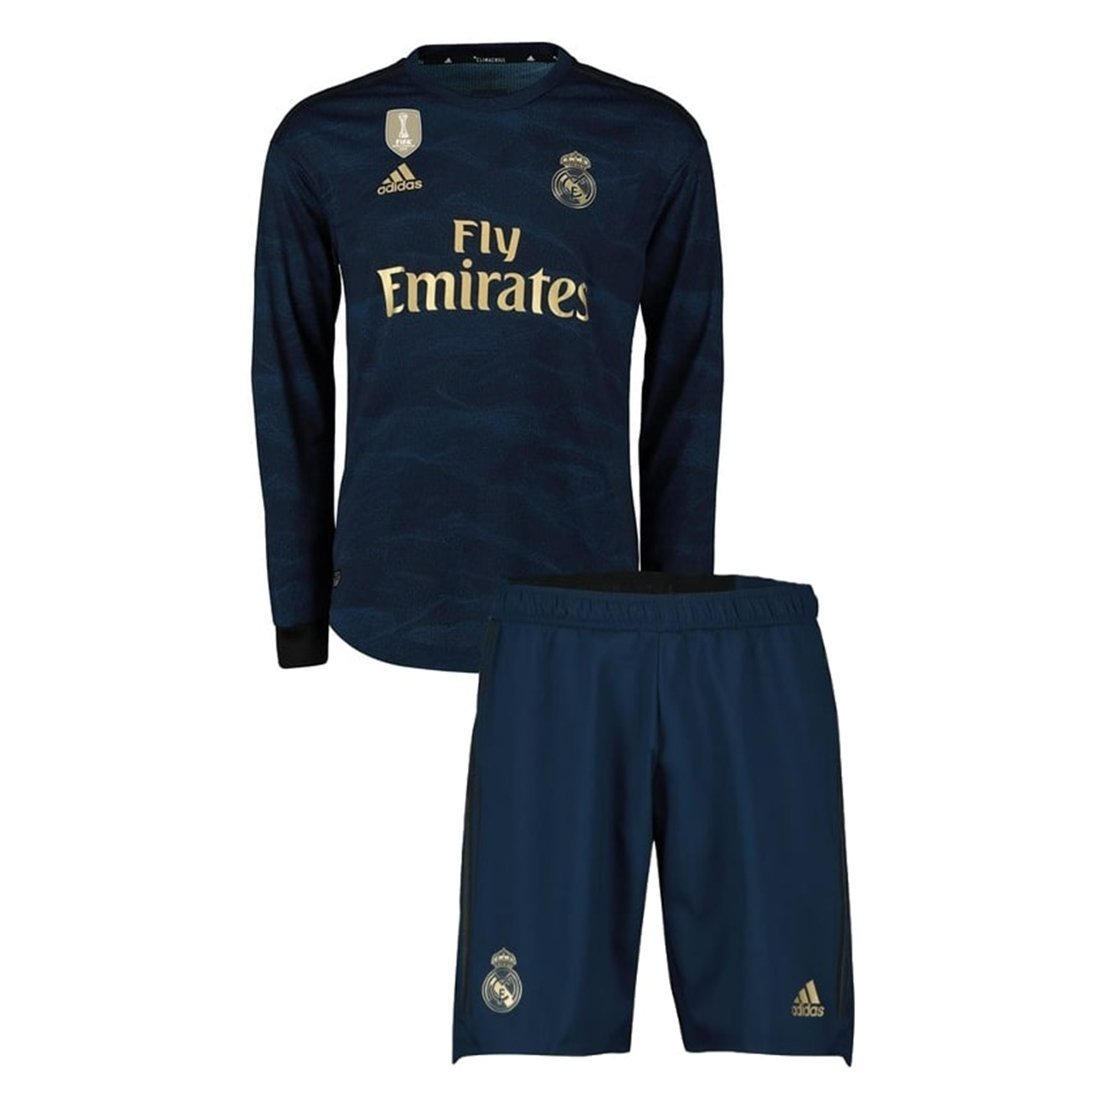 Футбольная форма Adidas FC Real Madrid